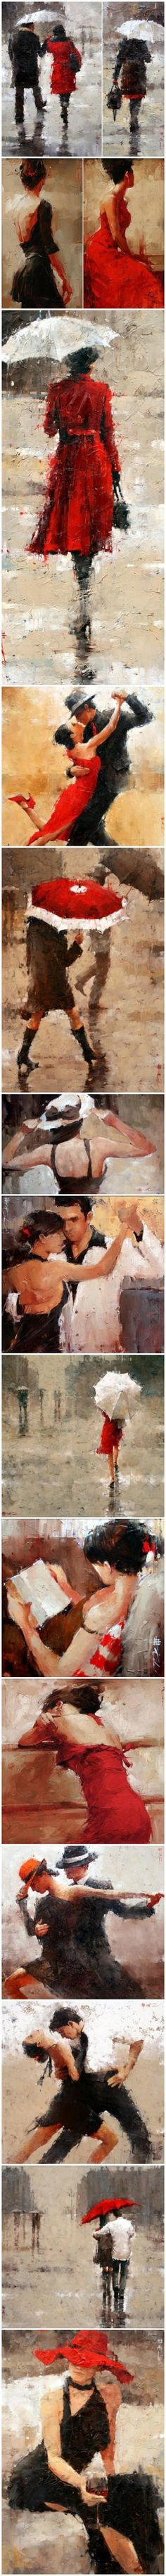 Andre Kohn. Love the colors